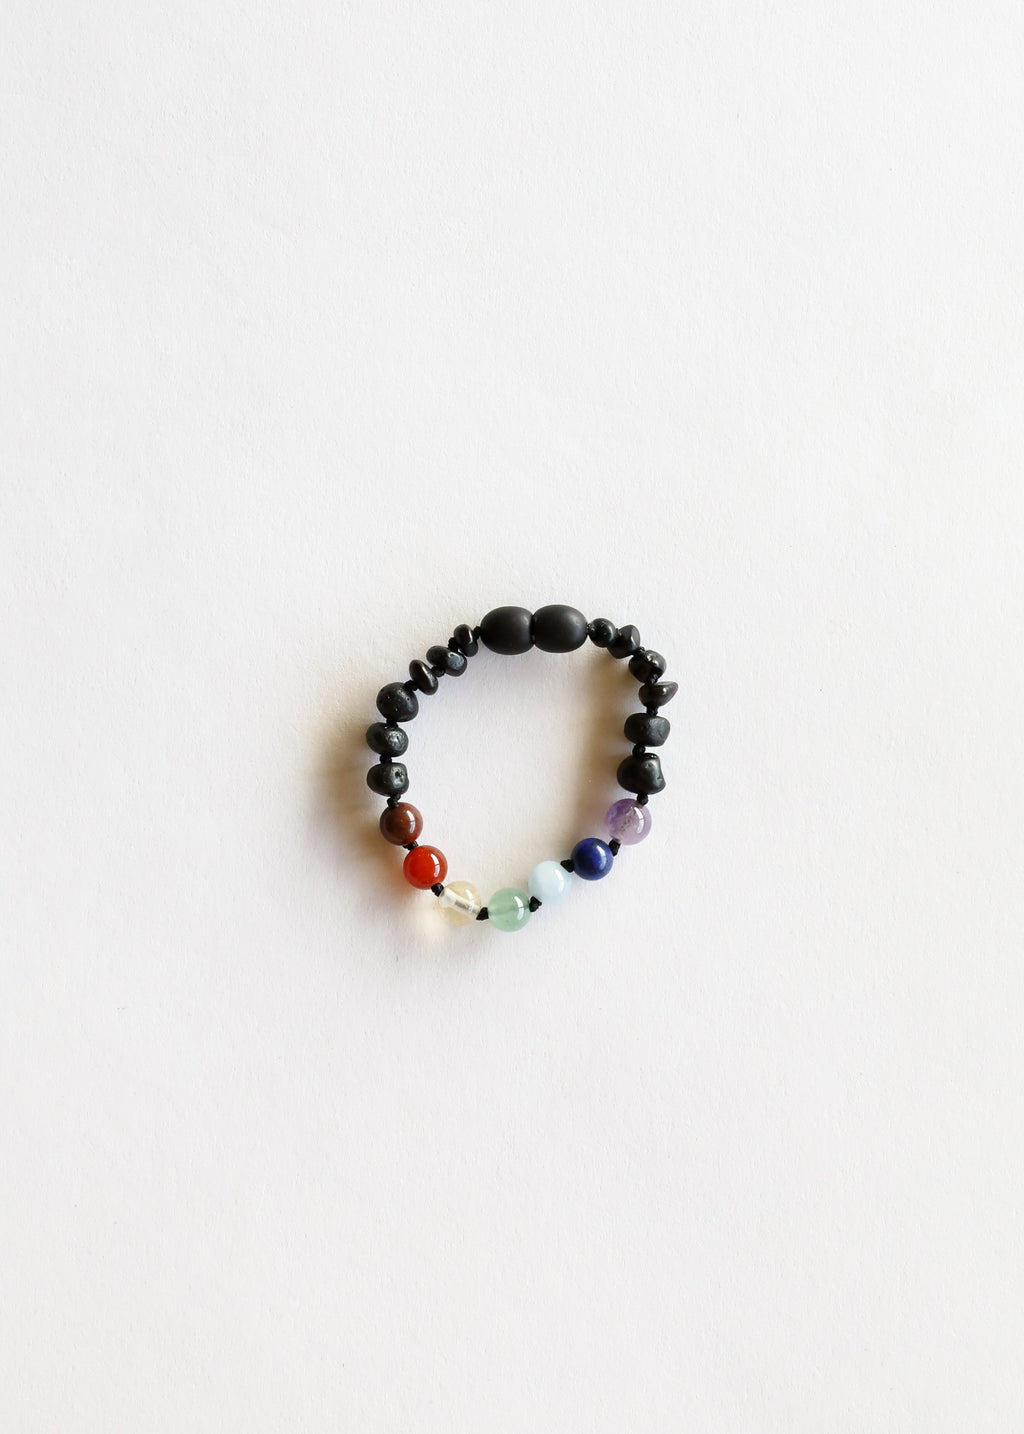 Raw Black Amber + CHAKRA Crystals || Anklet or Bracelet